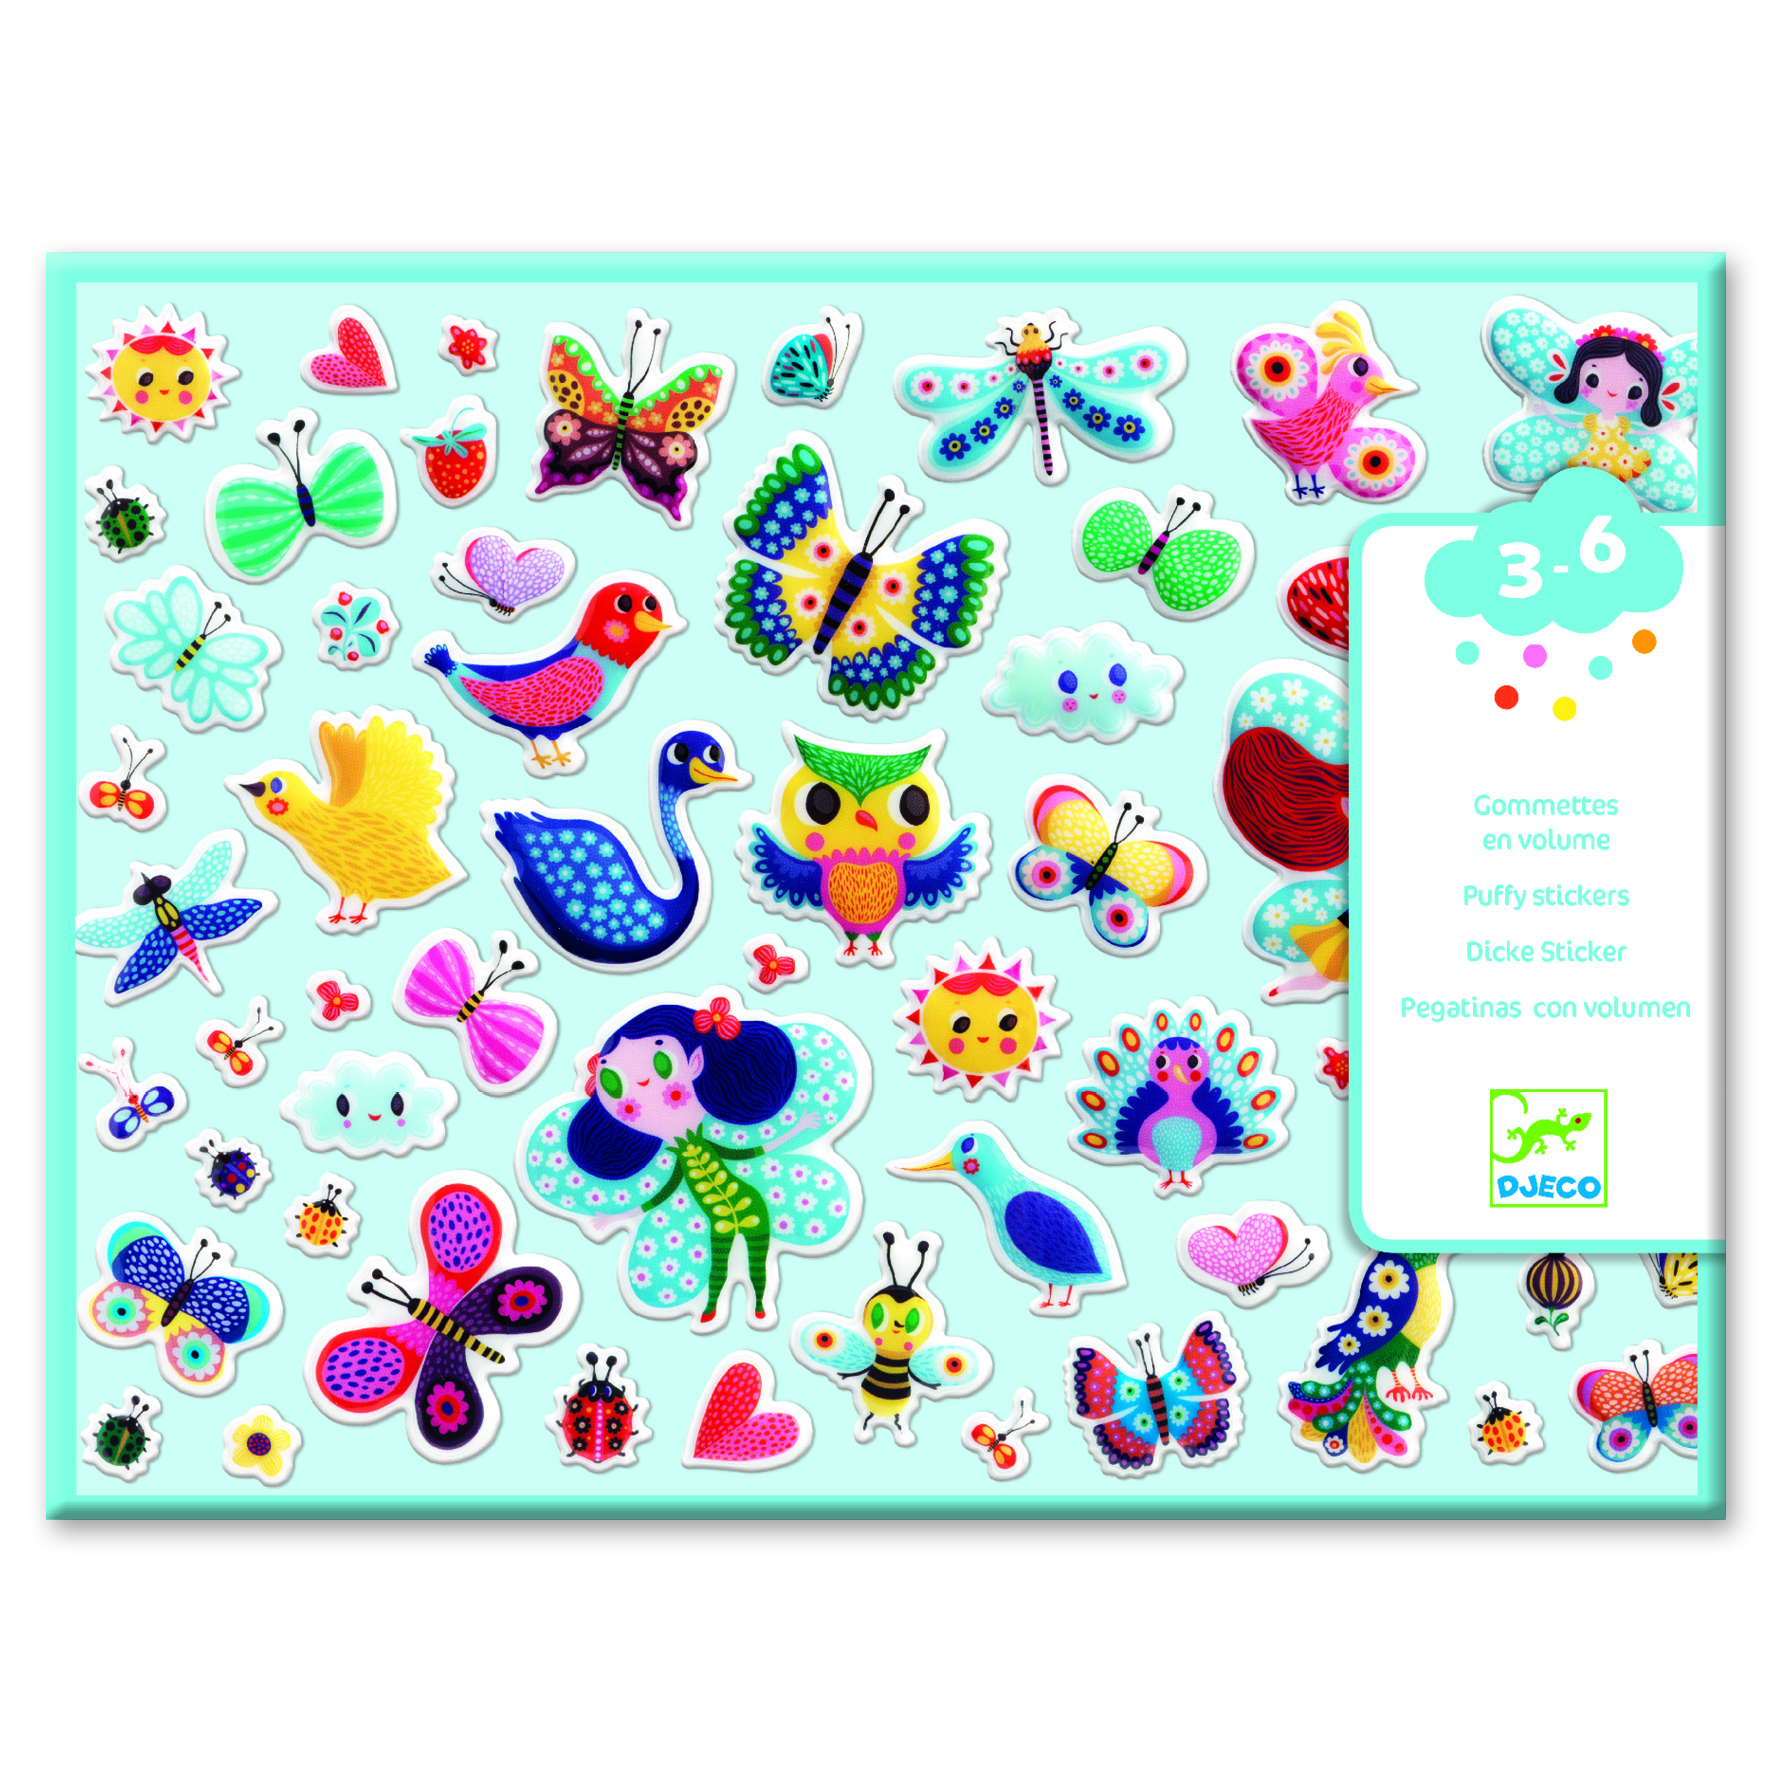 Little Wings Puffy Stickers from Djeco